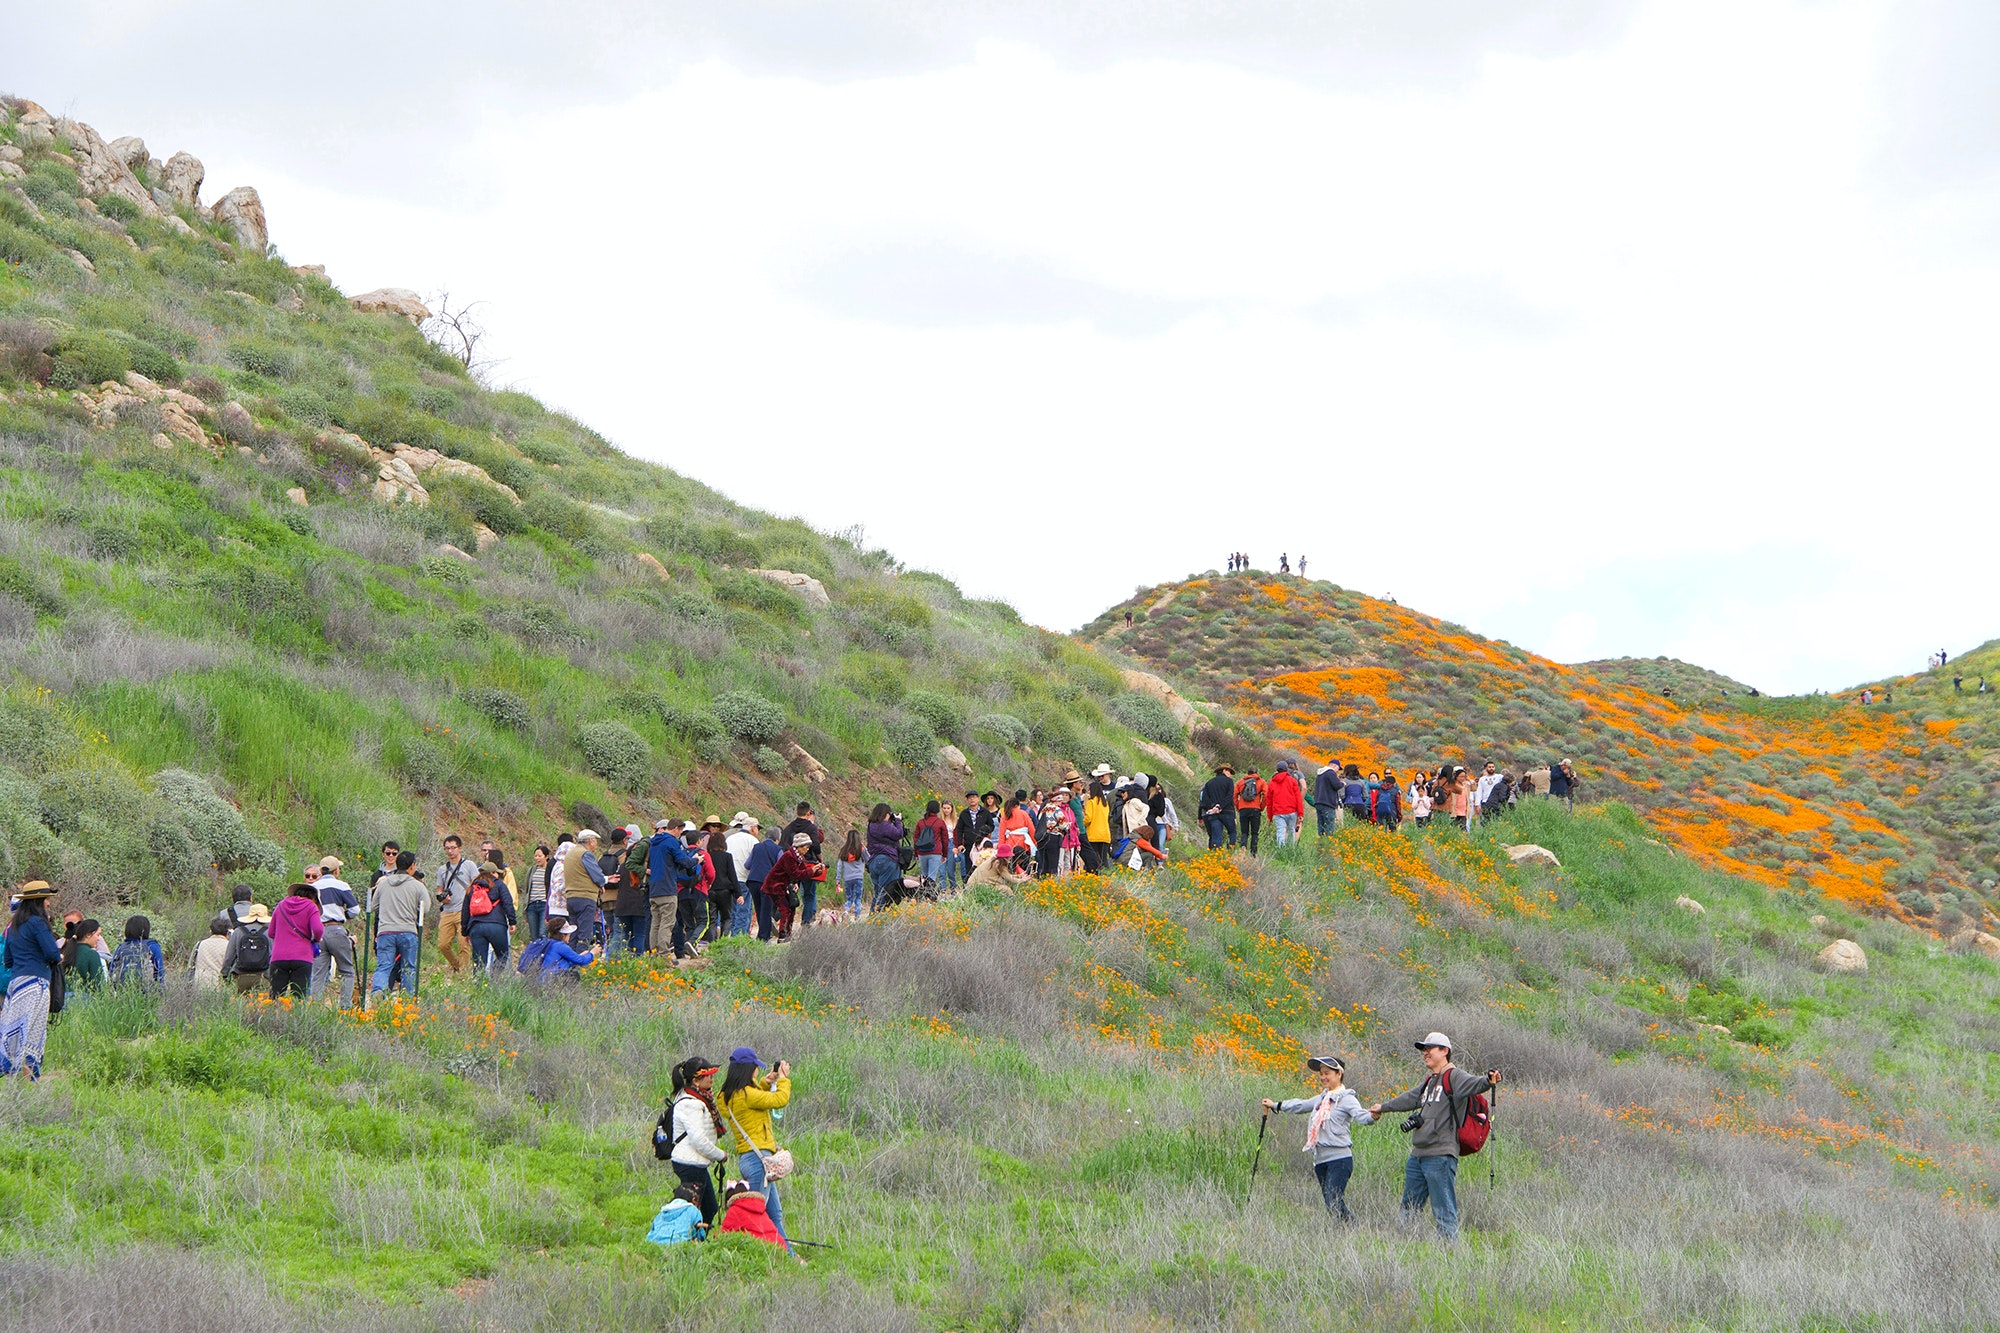 Thousands of visitors have arrived in Lake Elsinore each weekend to see the super bloom.